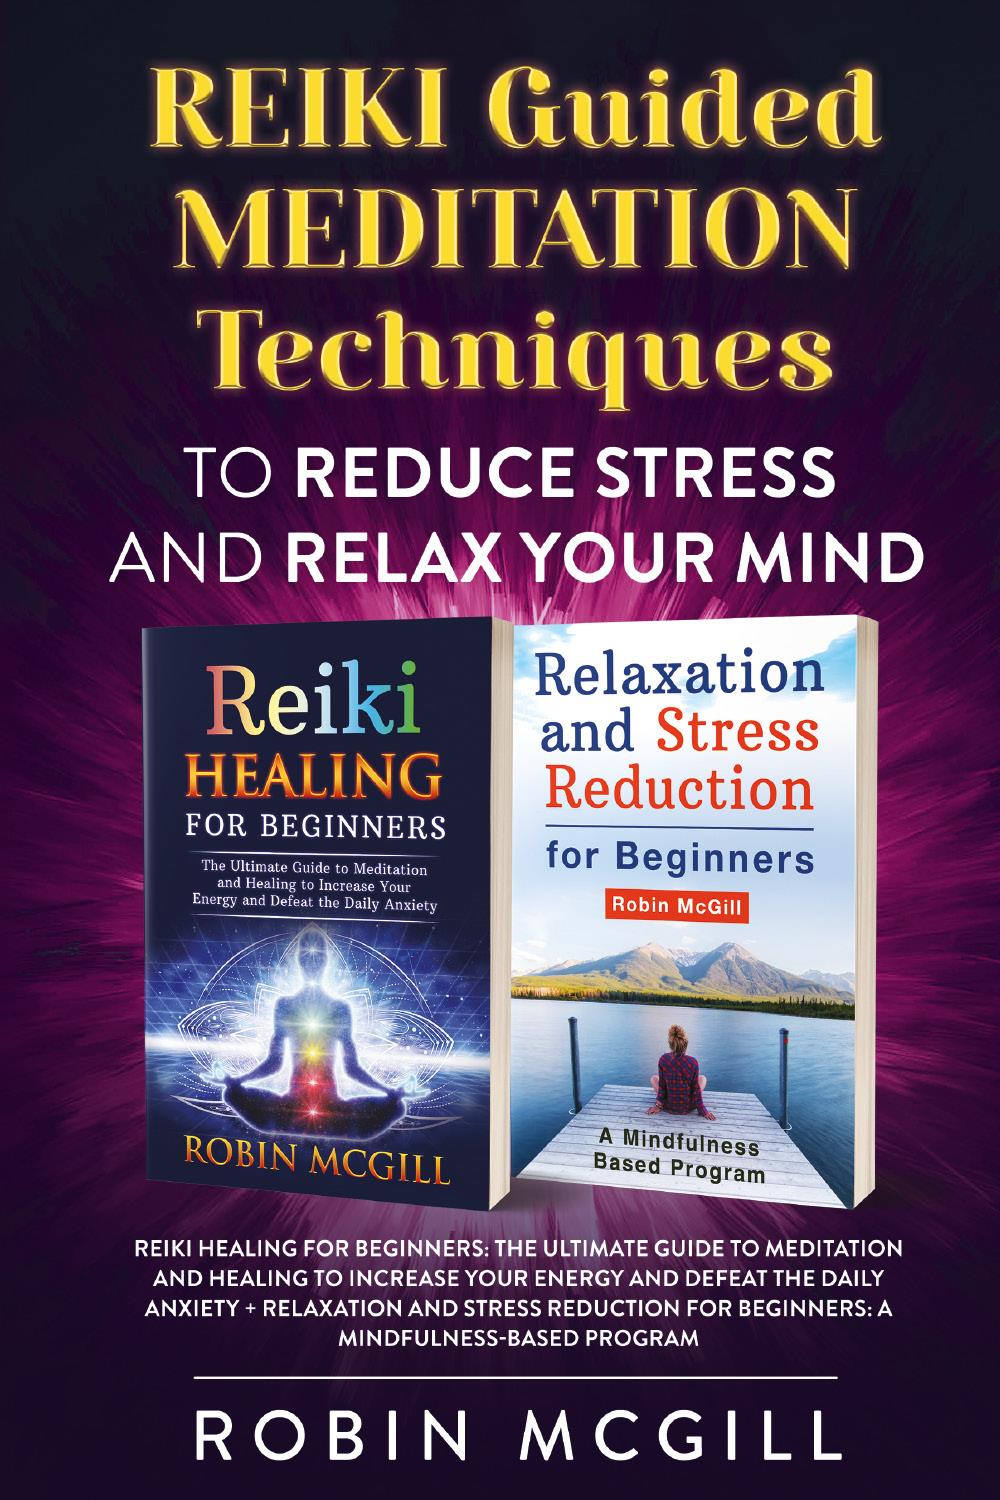 REIKI Guided Meditation Techniques to Reduce Stress and Relax Your Mind